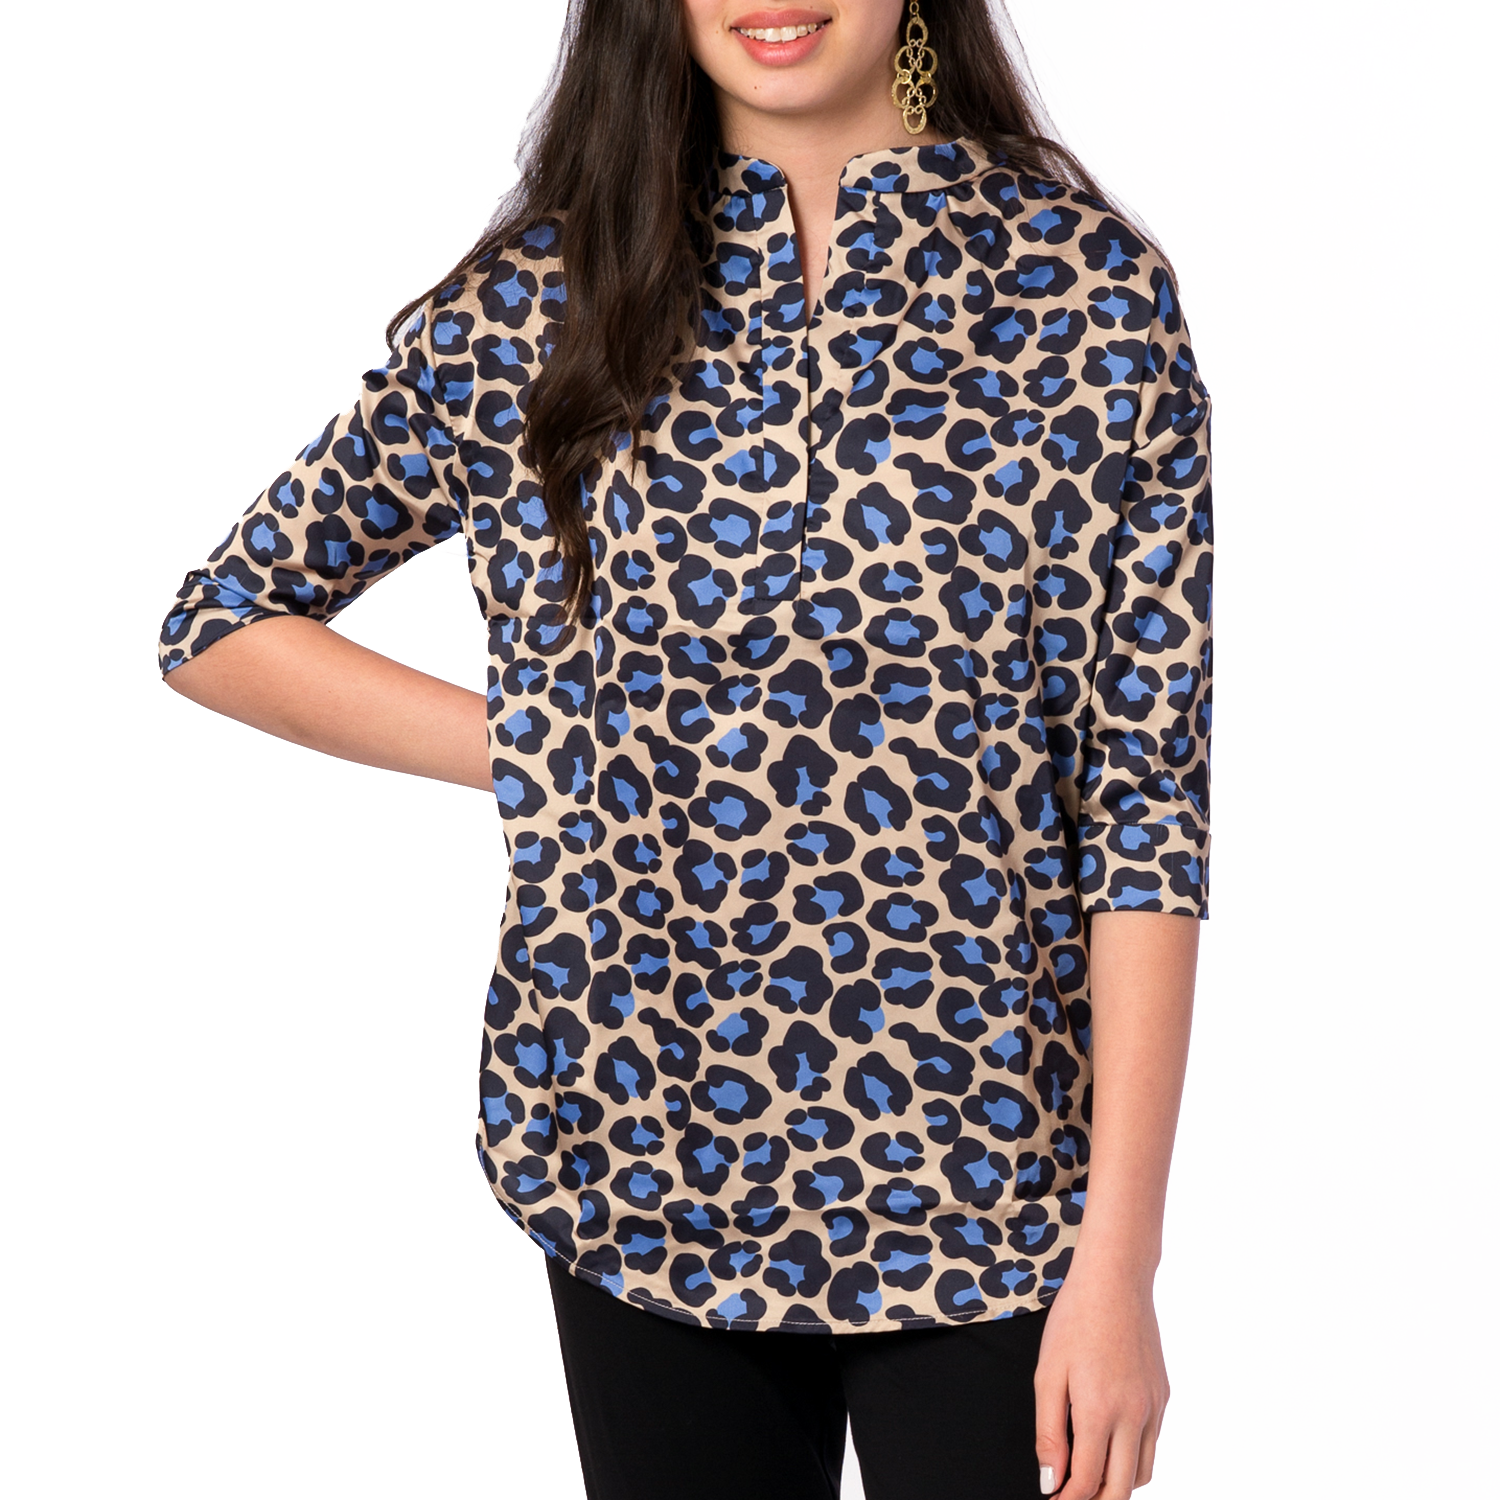 Heather Mandarin Collar Blouse in Tan Leopard - Elizabeth Ackerman New York